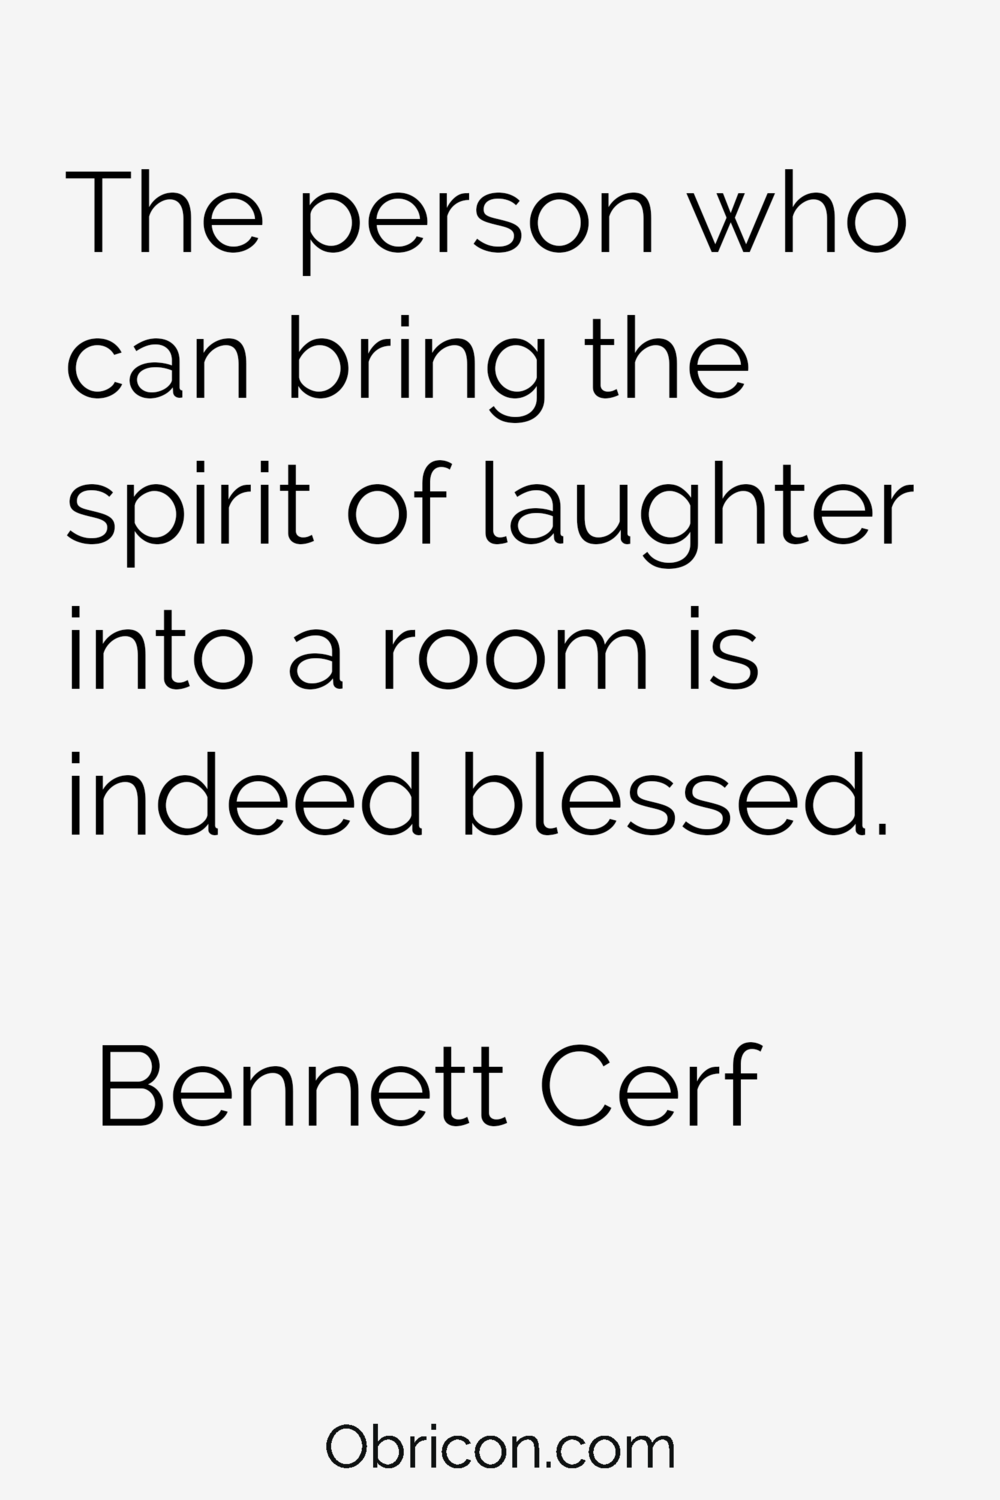 #laughter is #blessed.png